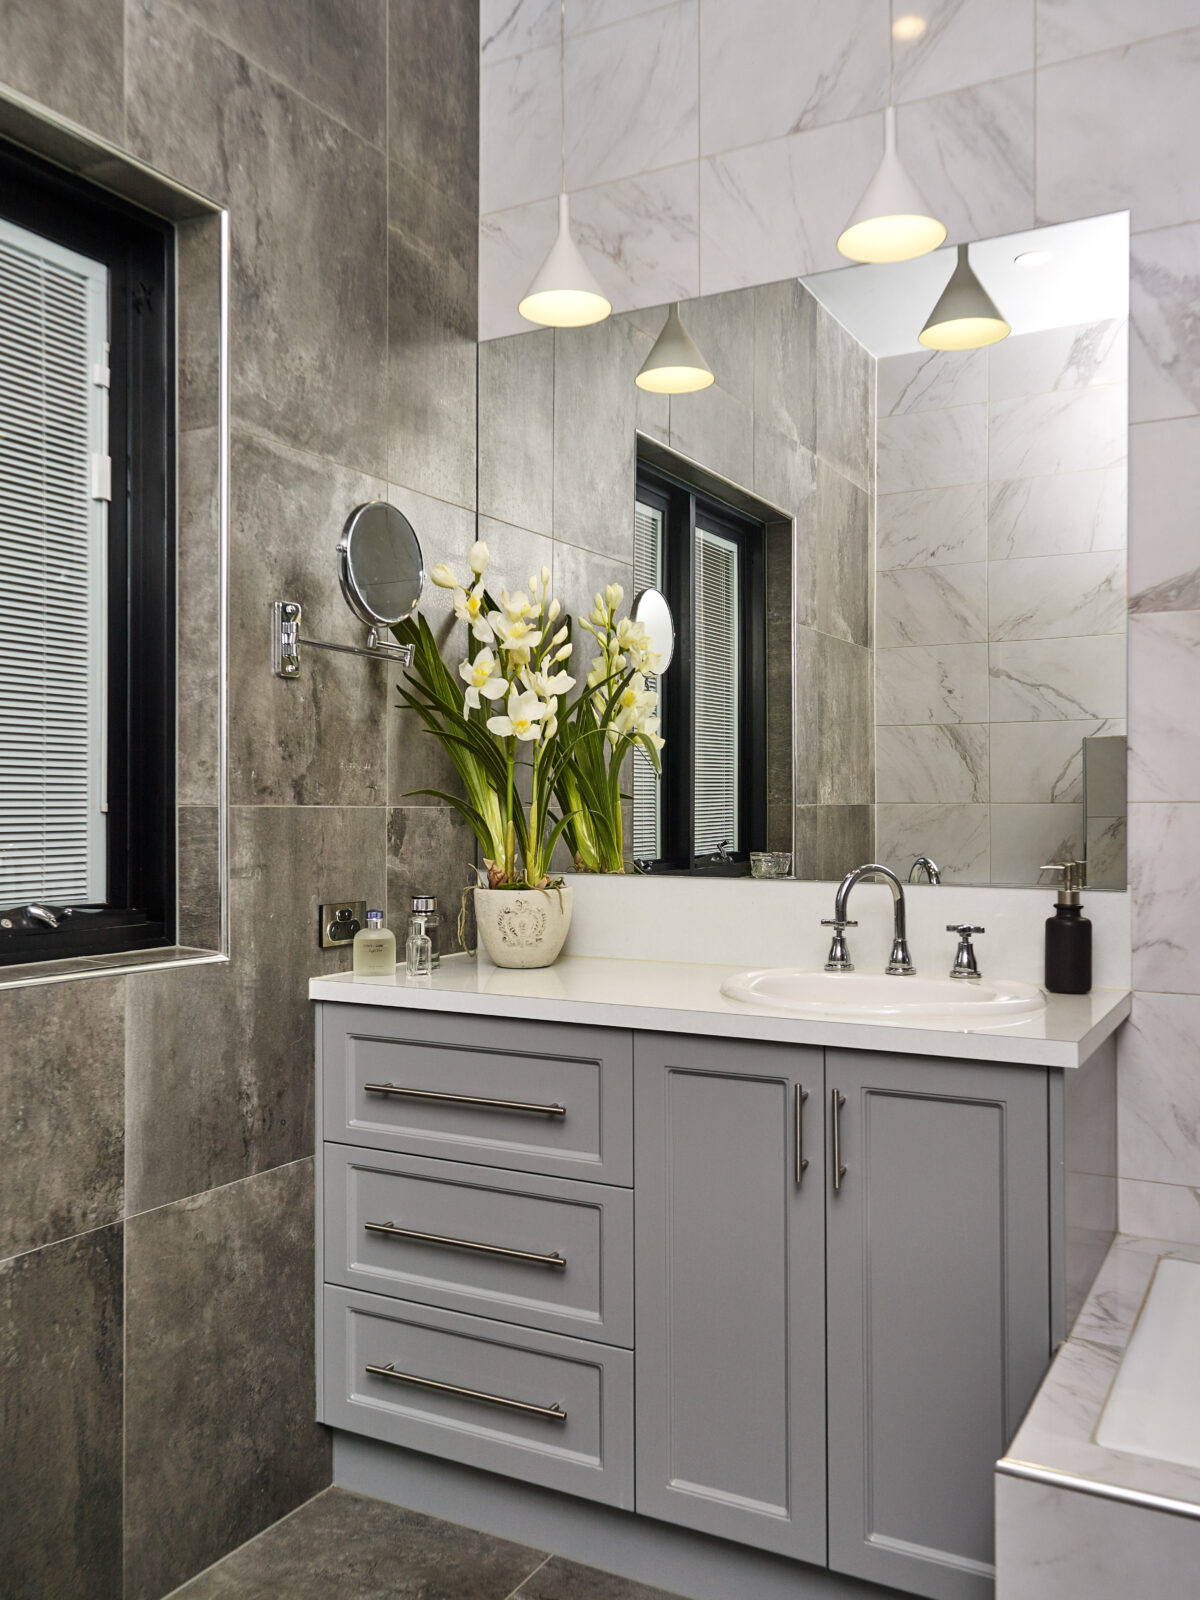 Bathroom Design Trends for 2018 | Granite Transformations Blog